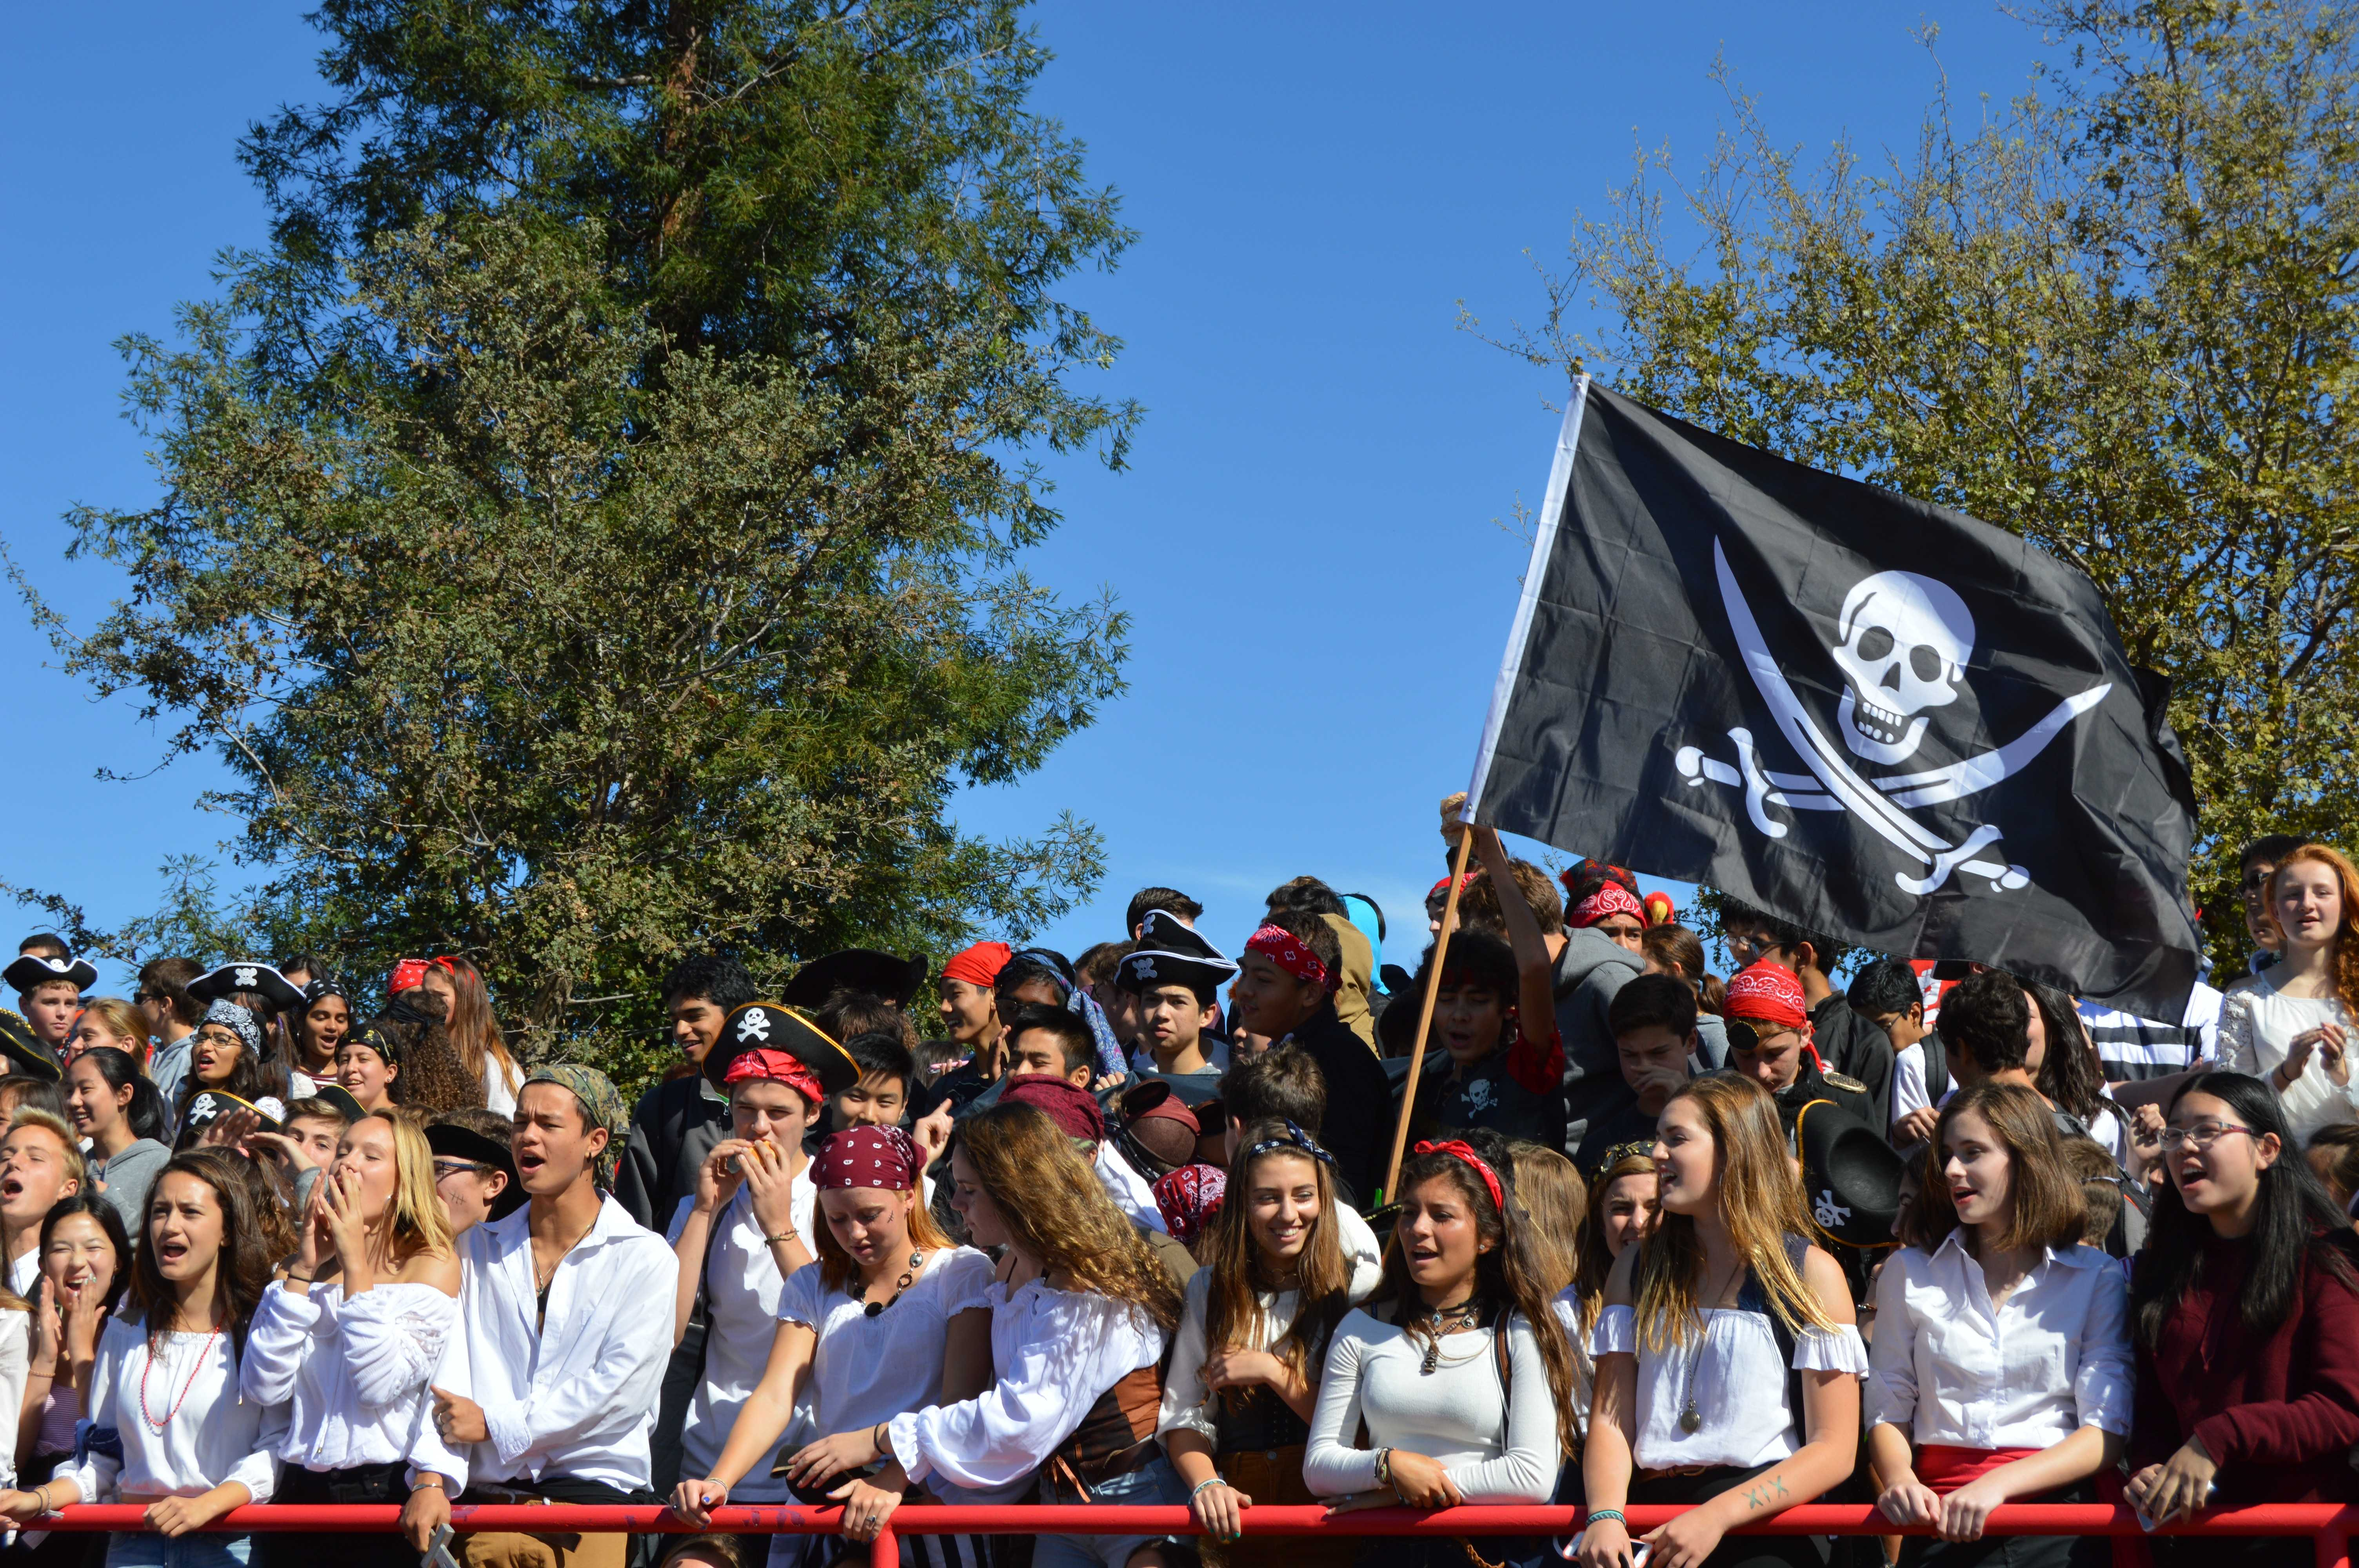 Sophomore+class+of+2019+watches+a+Lunch+game+during+homecoming+week.+Photo+by+Vibha+Arun.